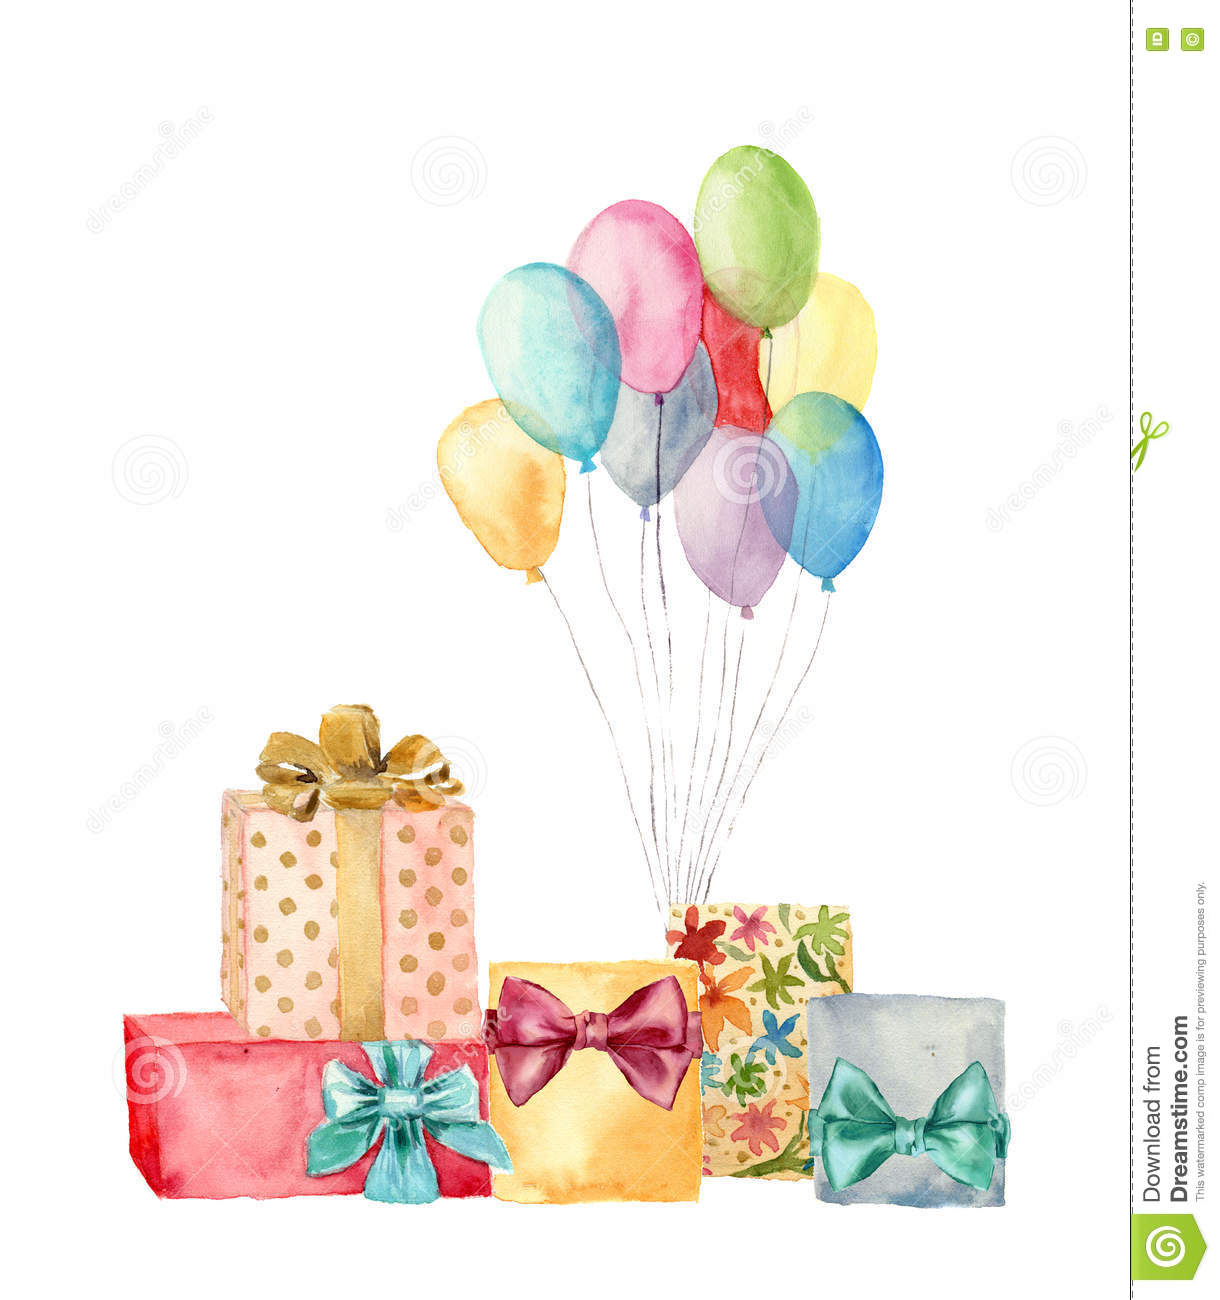 Watercolor Gift Boxes With Bow And Air Balloons Hand Painted Illustration Of Blue Pink Yellow Purple Birthday Gifts Set Isolated On White